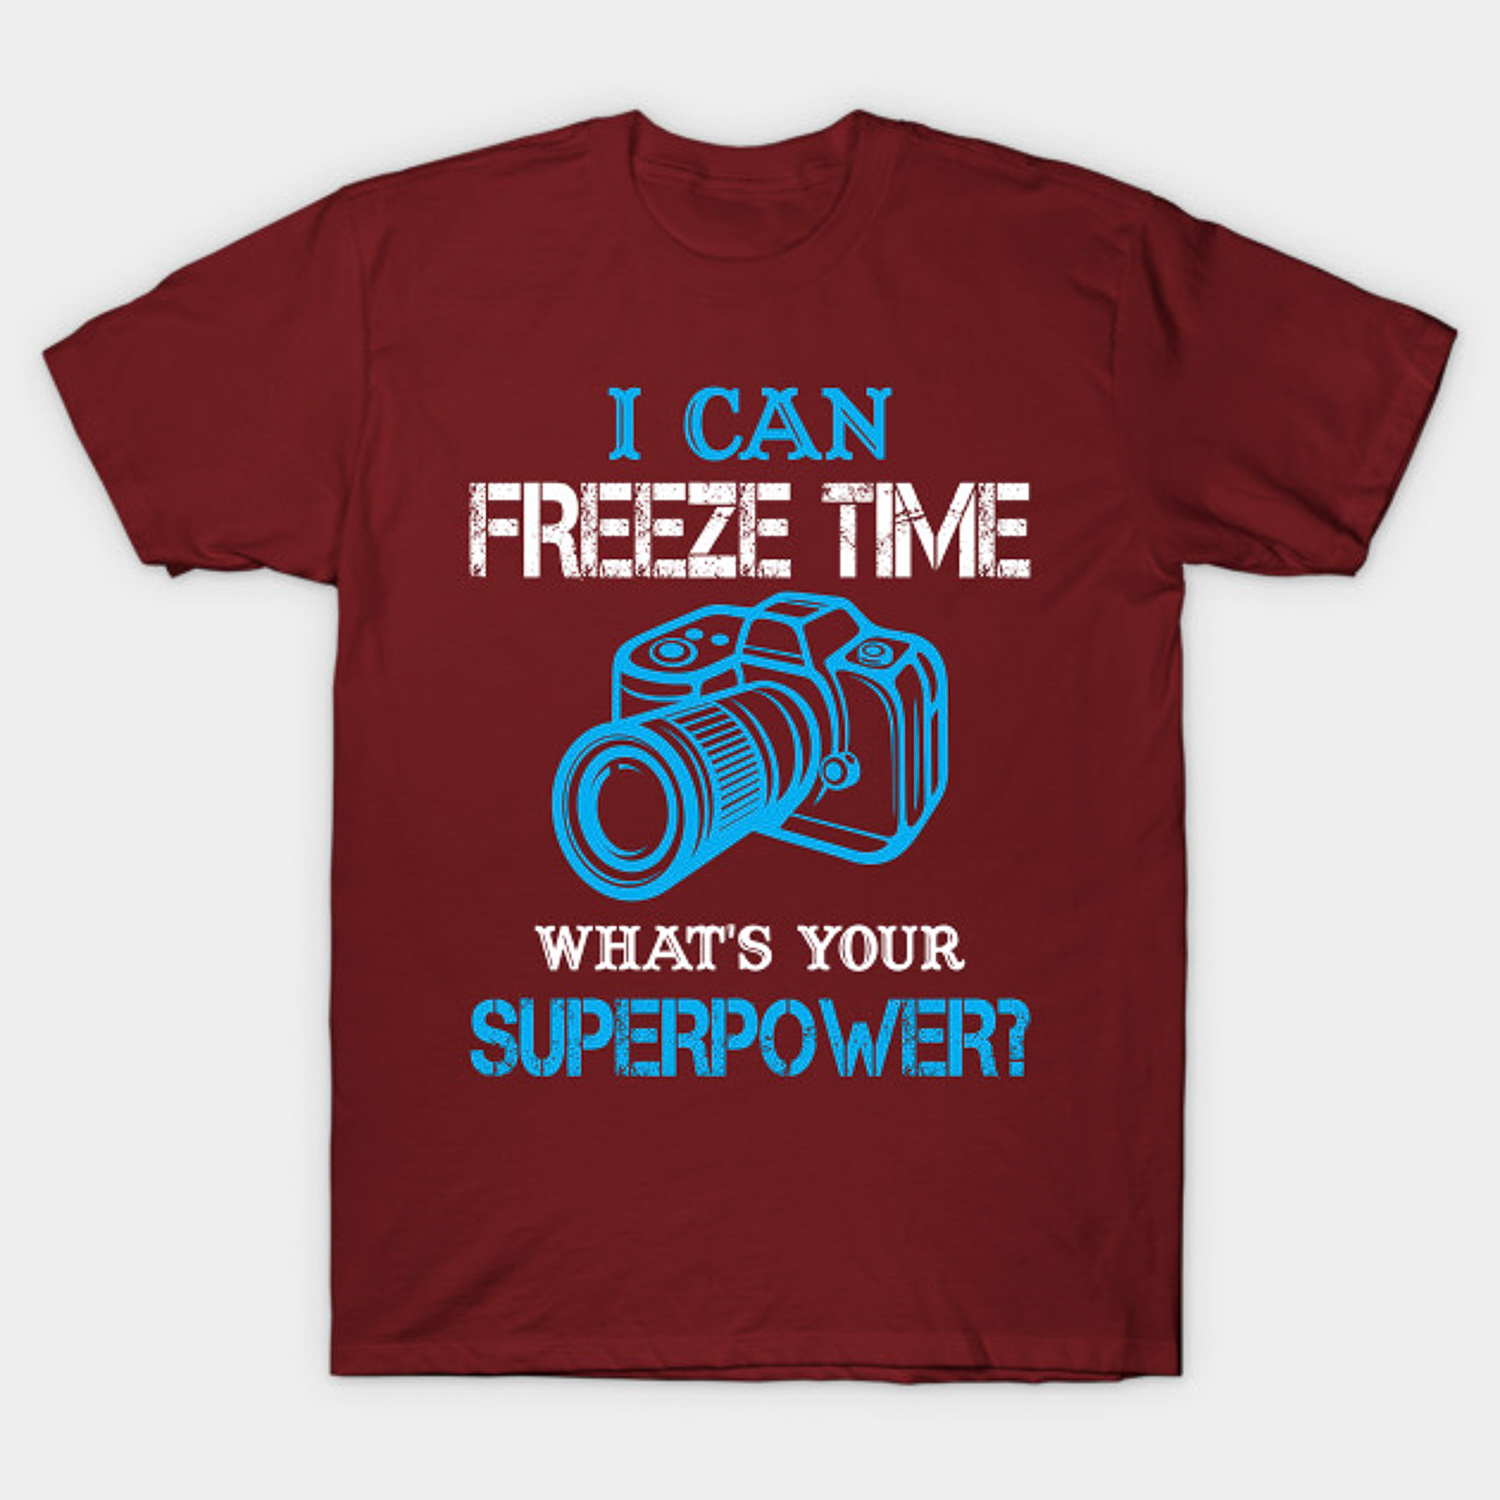 https://i0.wp.com/digital-photography-school.com/wp-content/uploads/2020/02/i-can-freeze_time-superpower-1.jpg?ssl=1